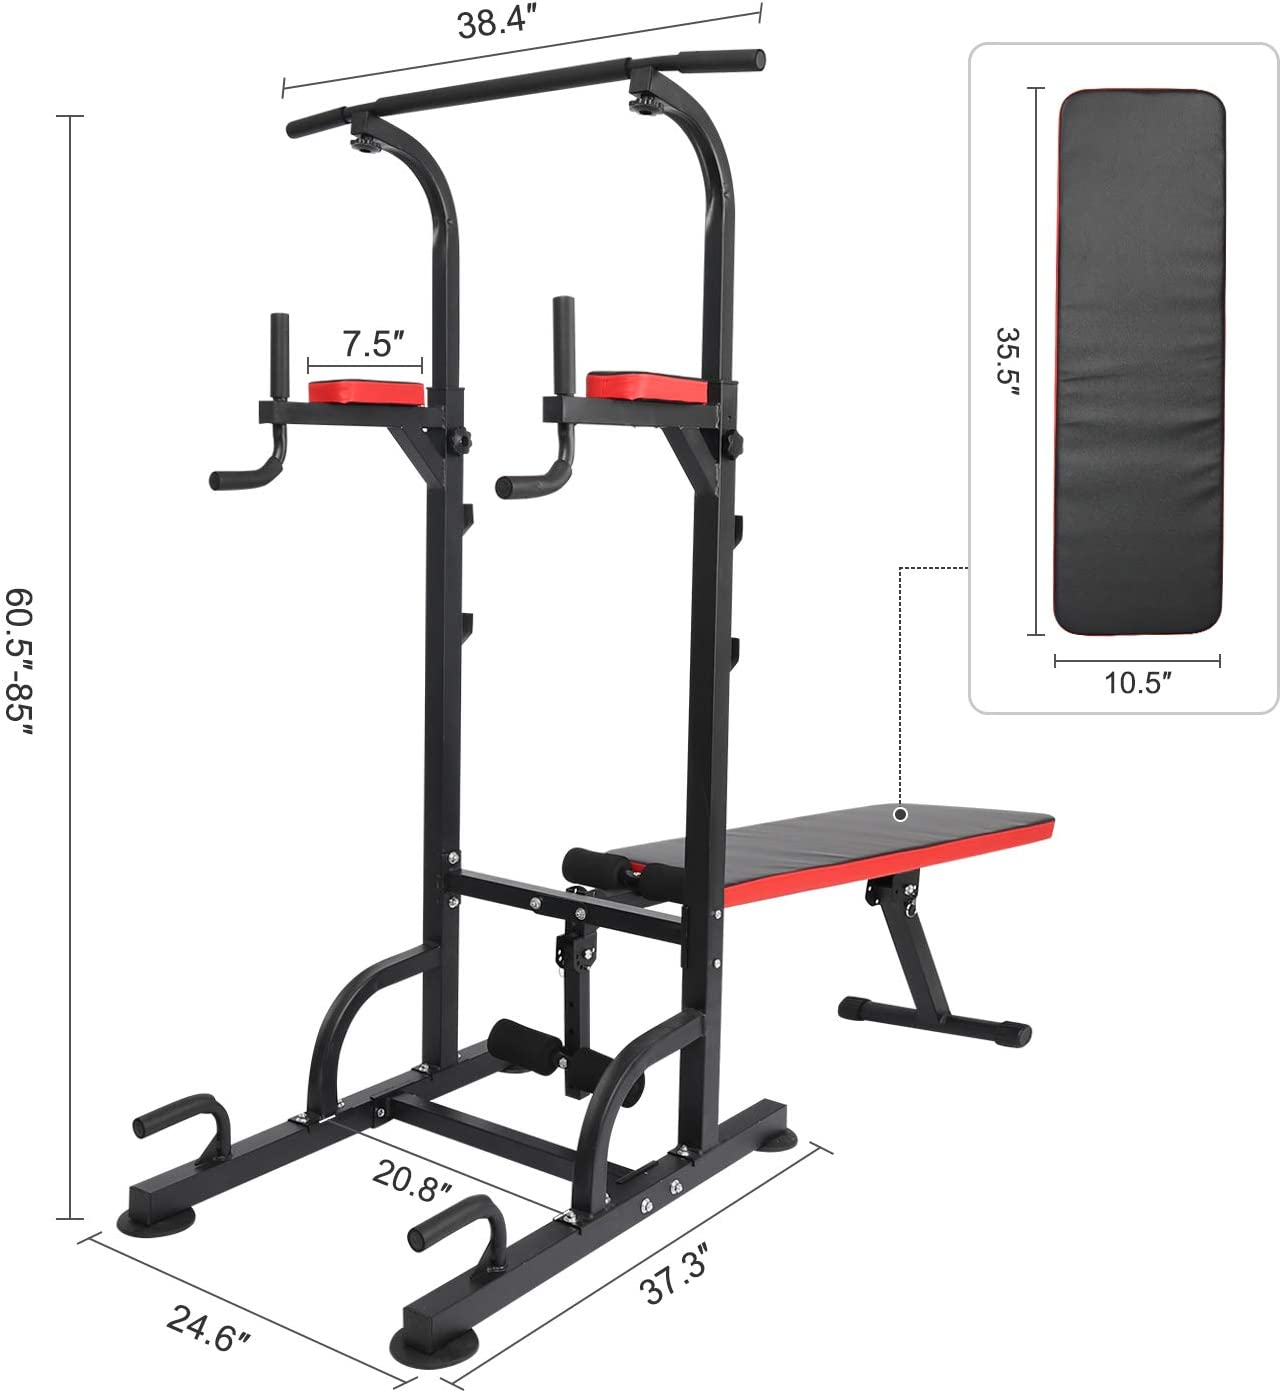 KAC Power Tower with Weight Bench Adjustable Dip Station Pull Up Bar for Home Gym Strength Training Workout Equipment